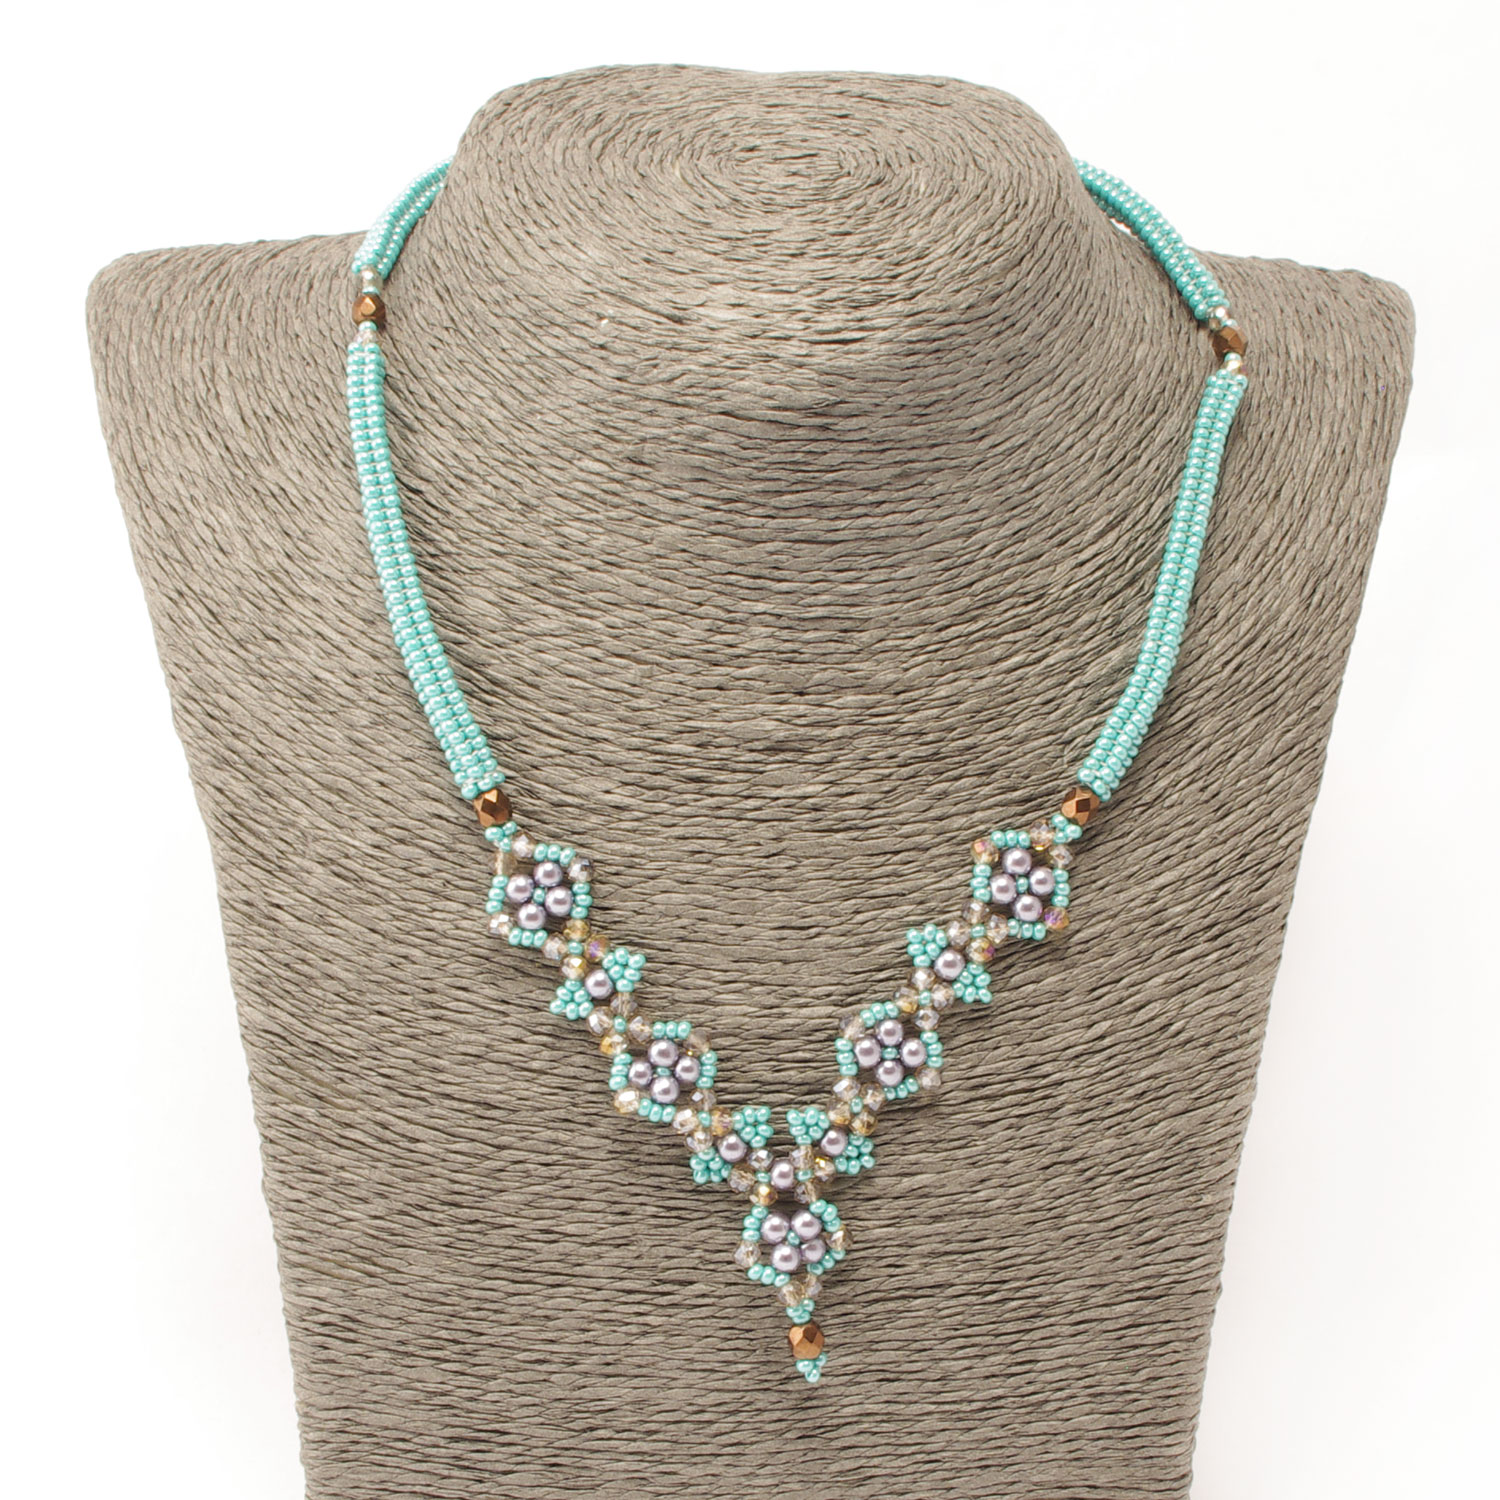 Reina Necklace in turquoise